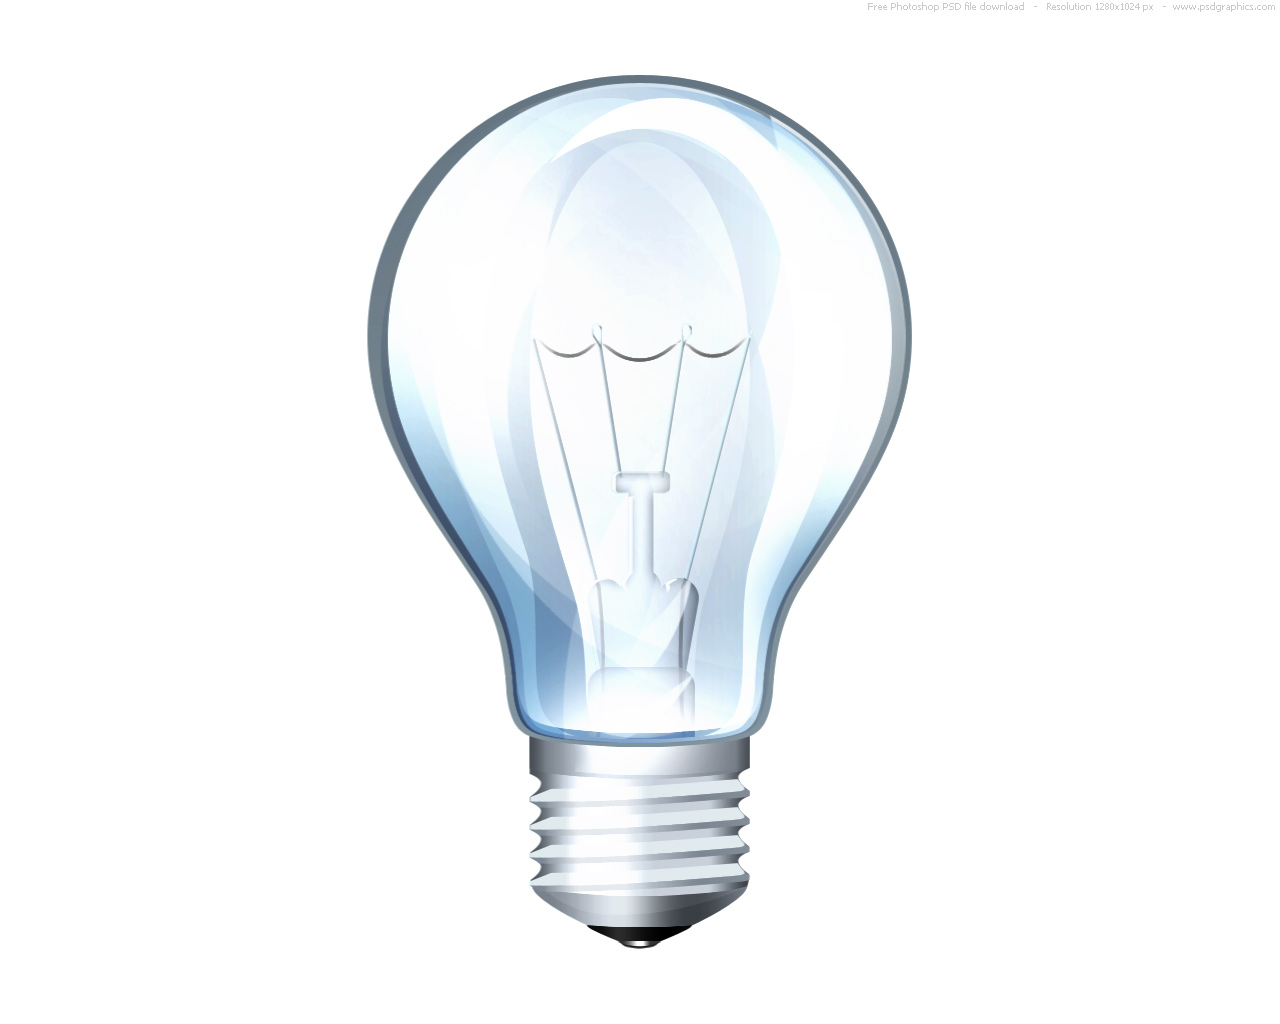 Blue Cfl Light Bulb